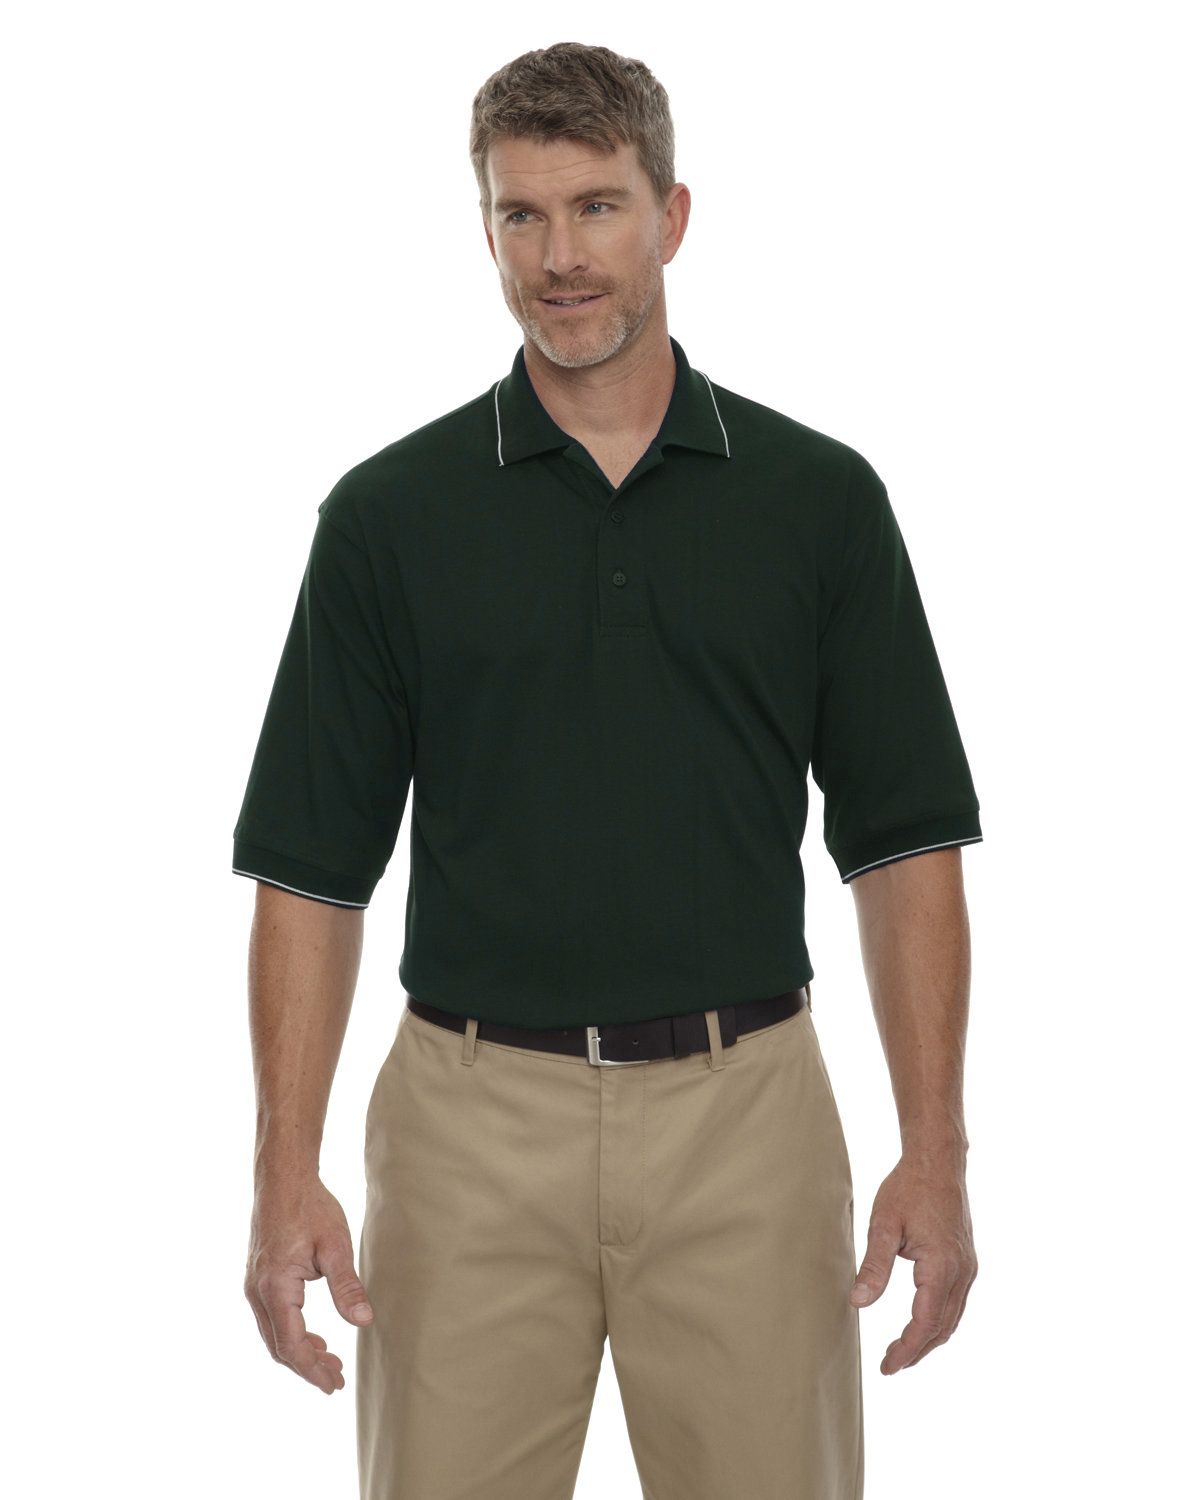 Extreme Men's Cotton Jersey Polo FOREST